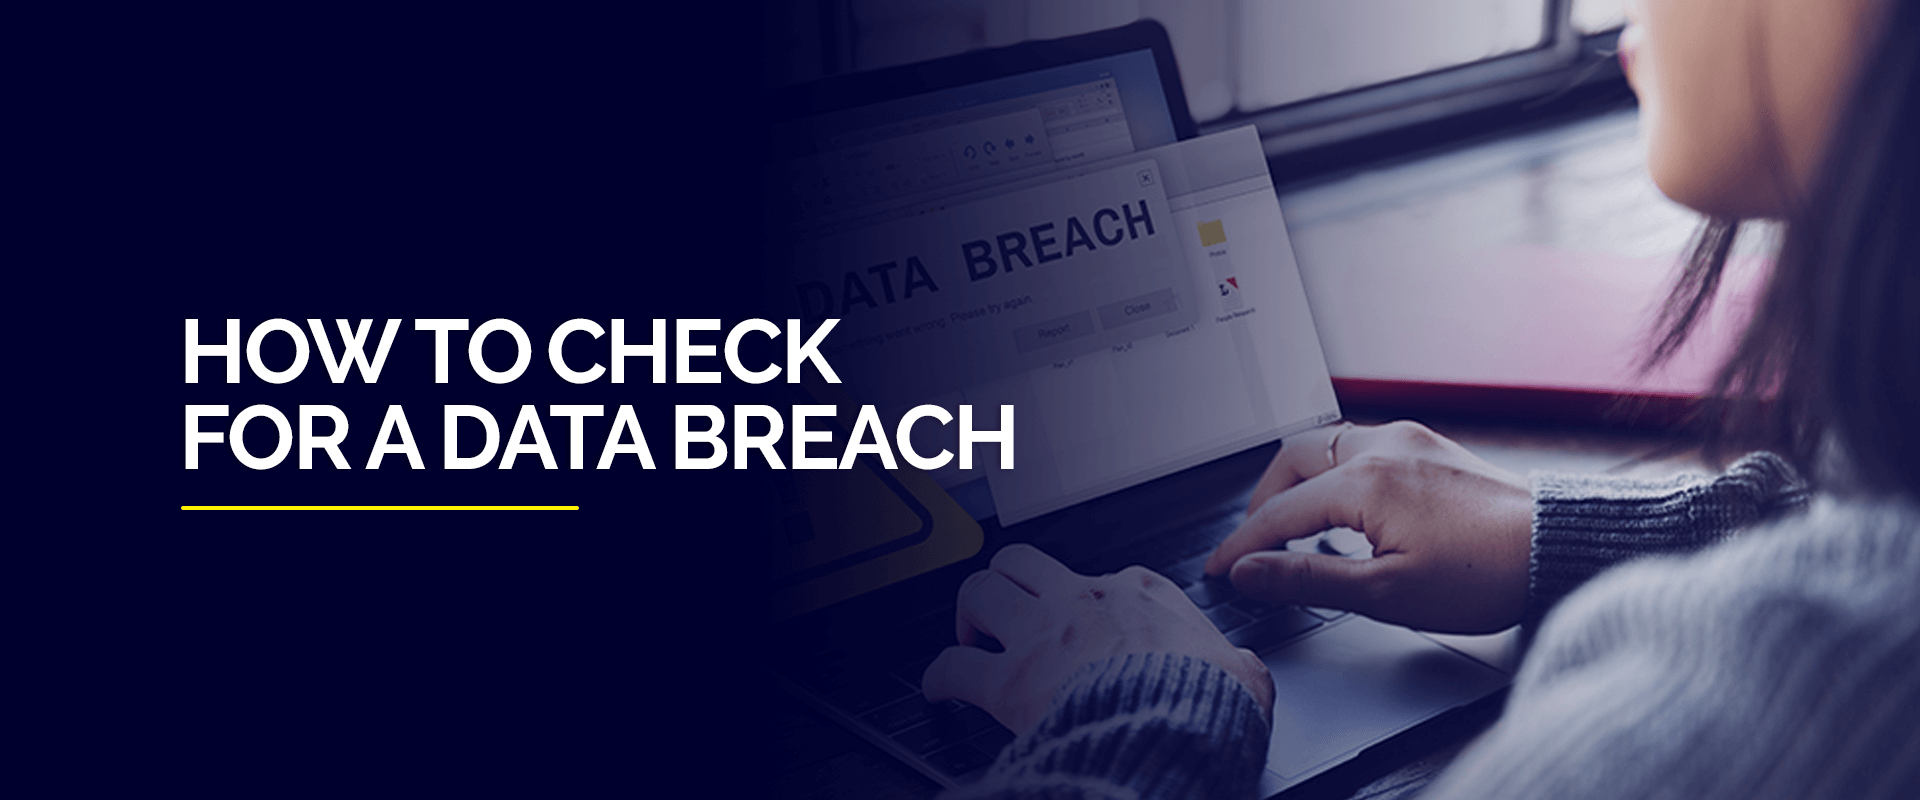 How to Check for a Data Breach